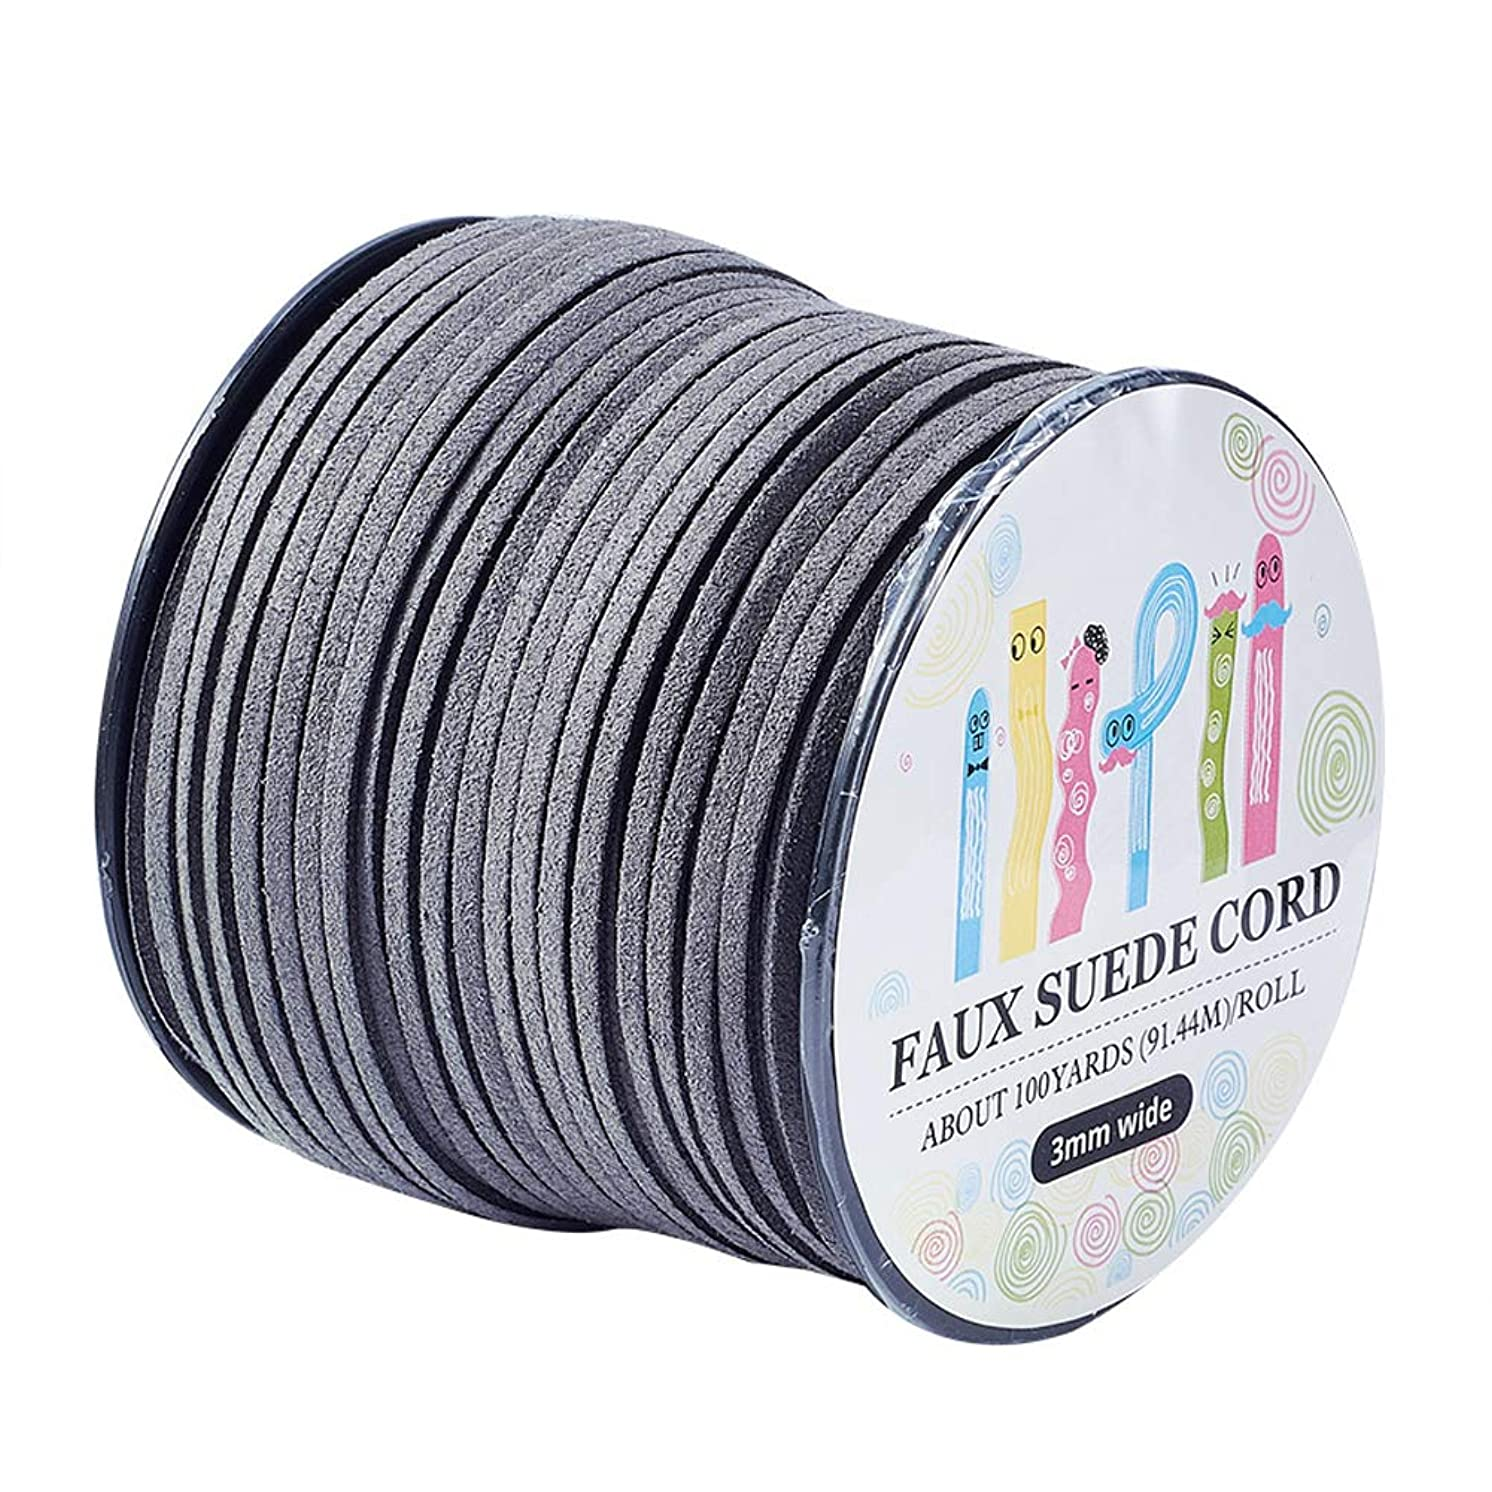 Pandahall 98Yard 90m/roll 3x1.4mm Faux Suede Cord String Leather Lace Beading Thread Suede Lace Double Sided with Roll Spool 295feet DarkSlateGray